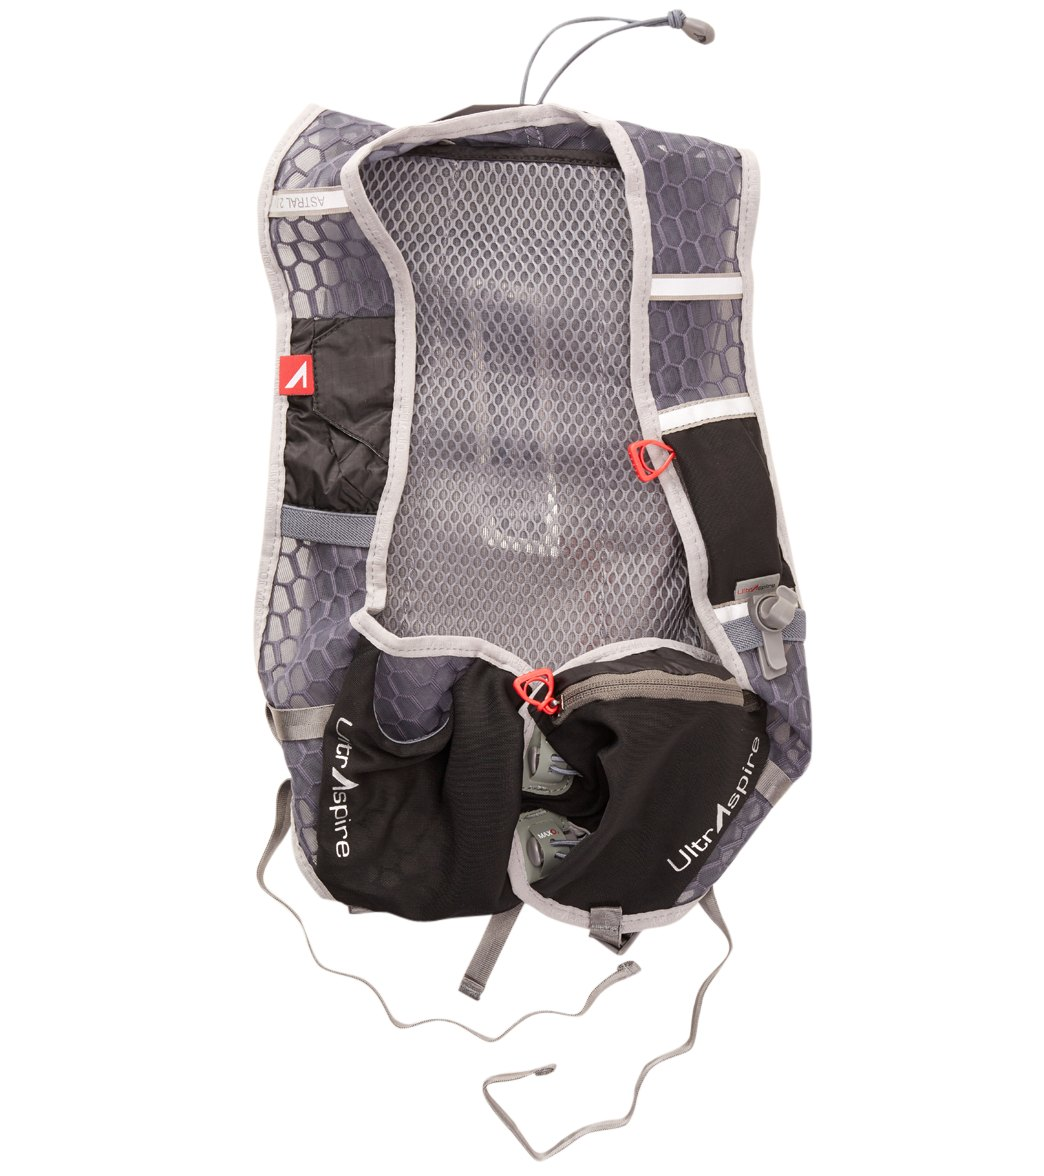 bb0266097f UltrAspire Astral 2.0 Race Vest at SwimOutlet.com - Free Shipping